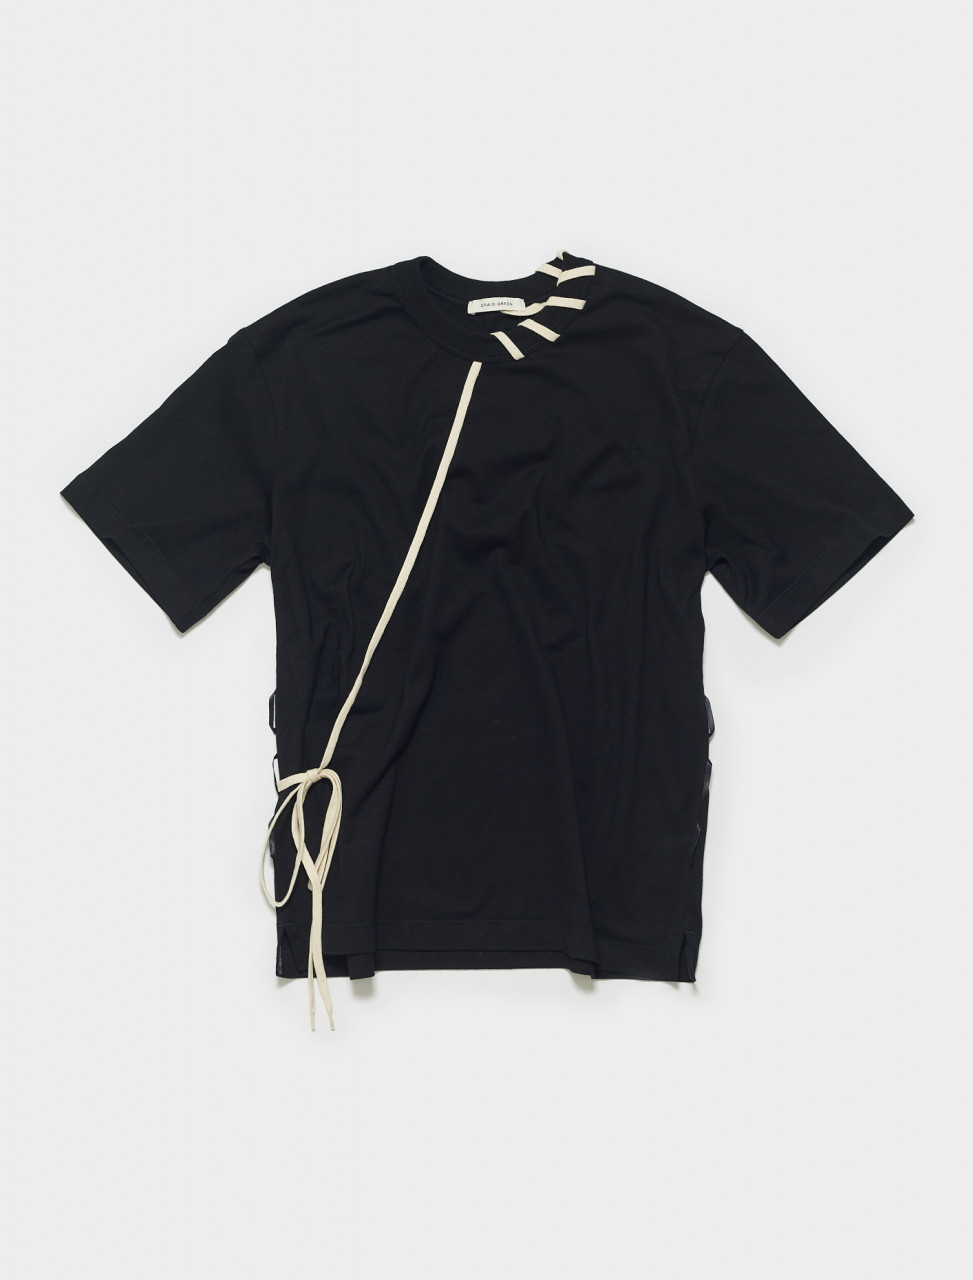 CGSS21CJETSS01 CRAIG GREEN LACED T SHIRT IN BLACK CREAM